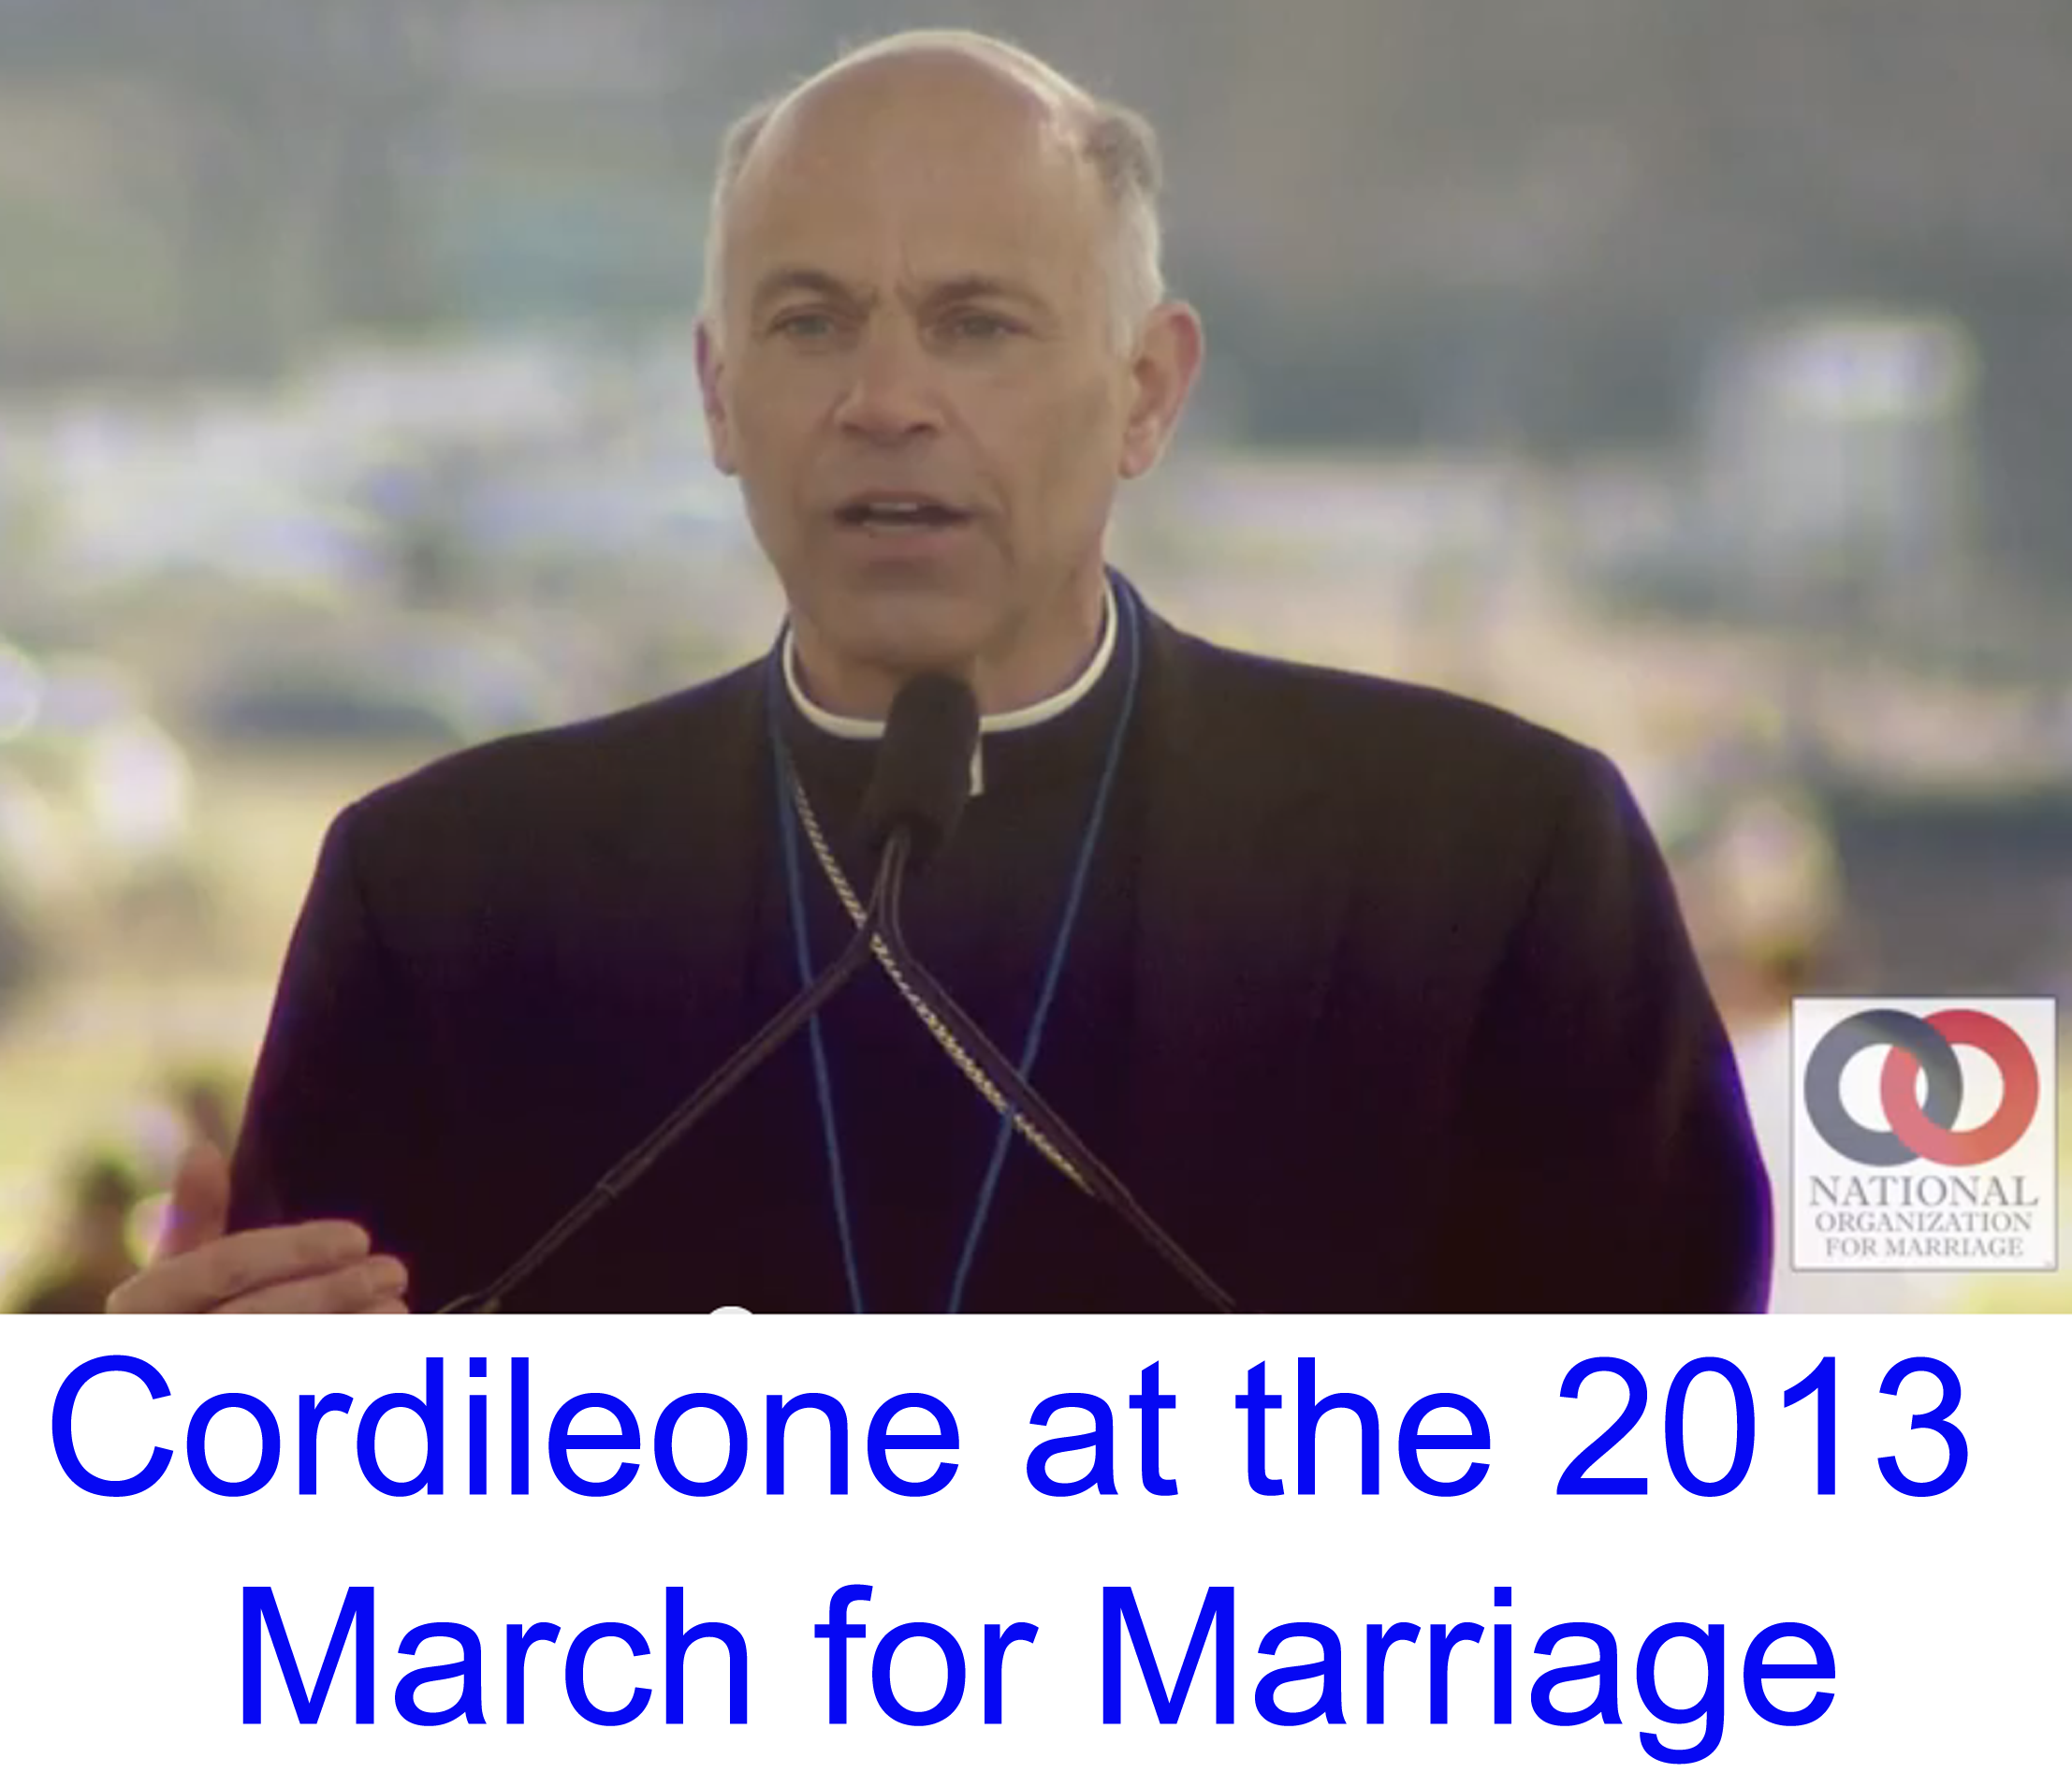 NOM; National Organization for Marriage; March for Marriage; San Francisco Archbishop Salvatore Cordileone